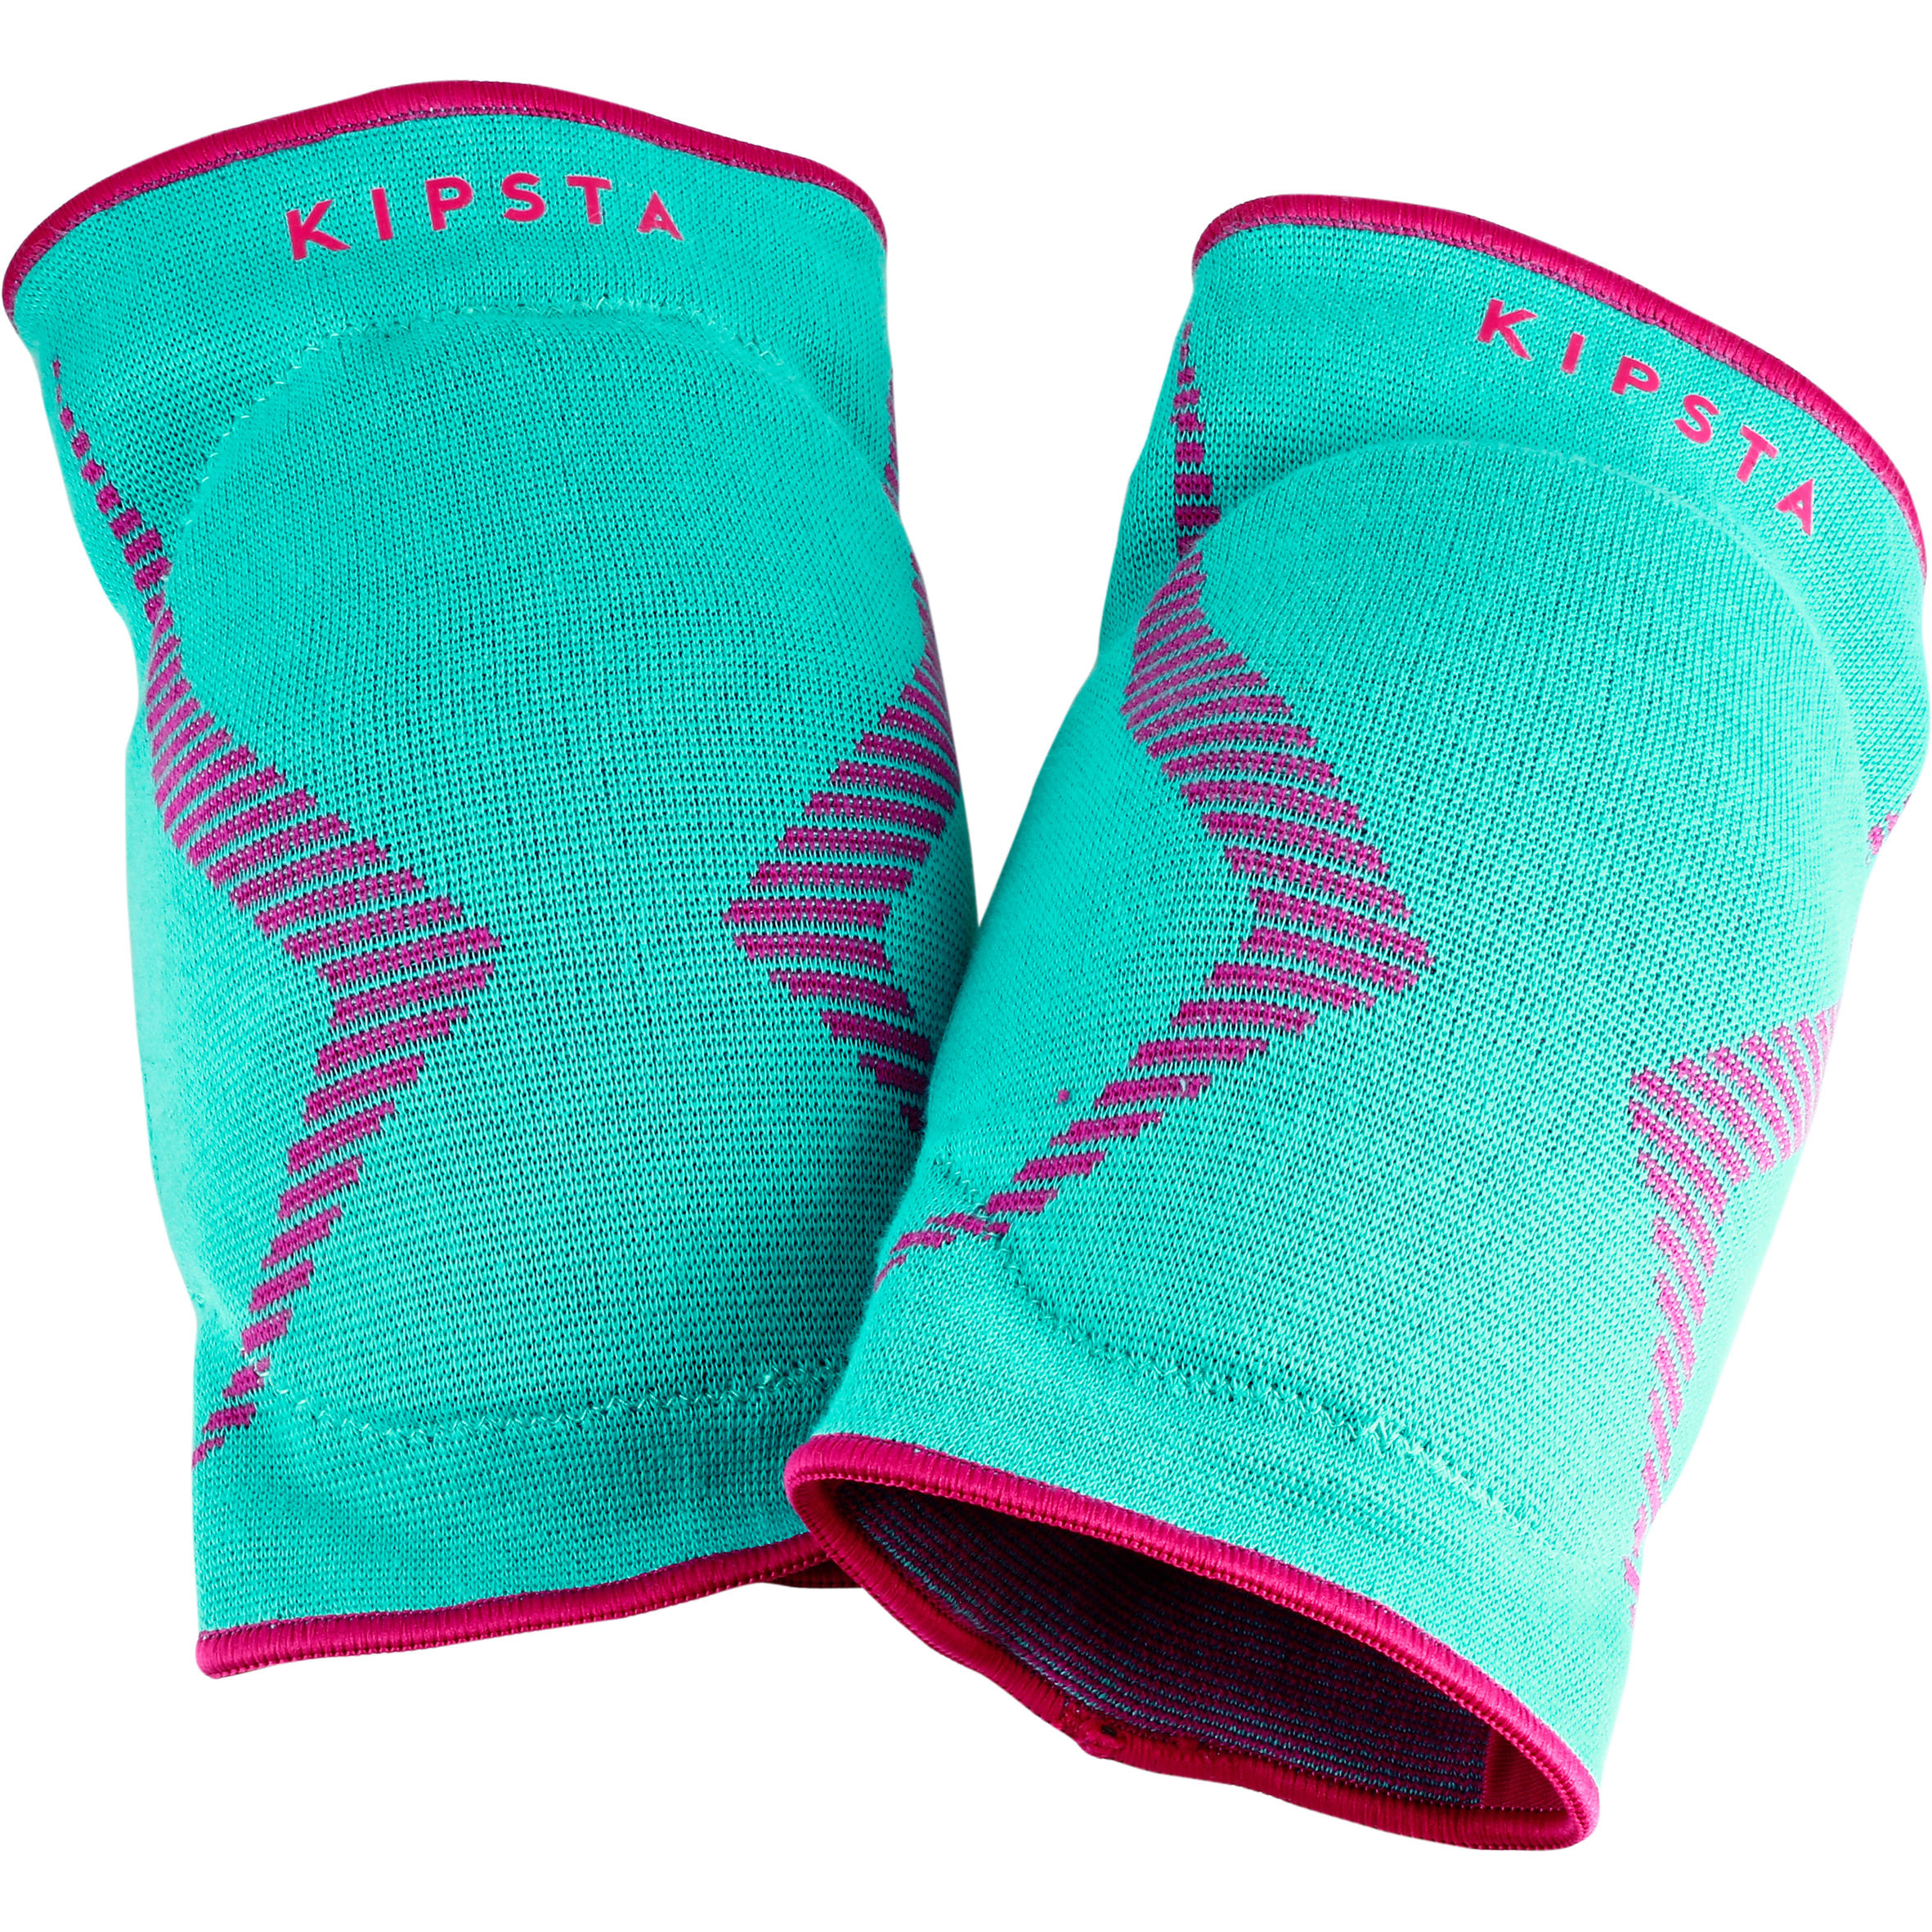 V500 Volleyball Knee Pads - Green and Pink